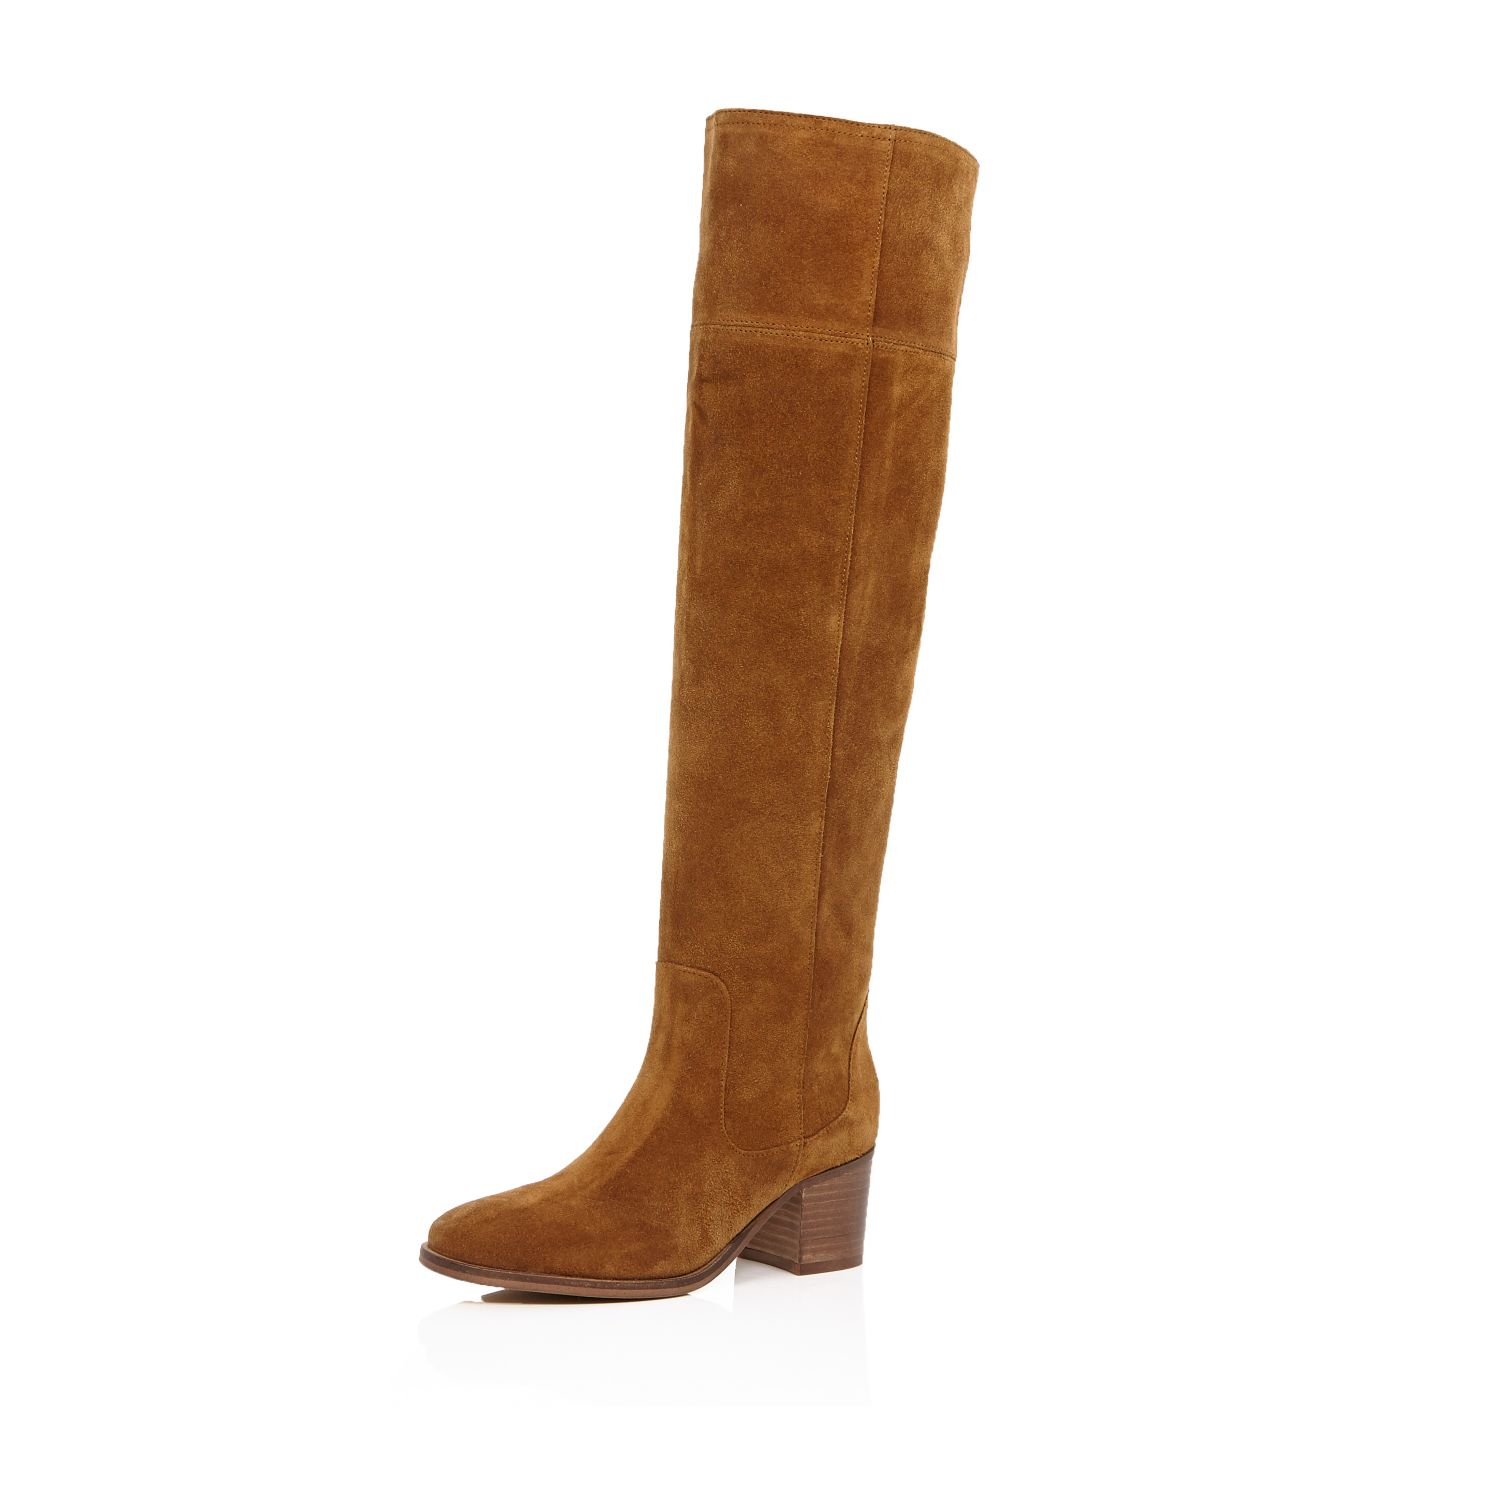 River island Tan Brown Suede Knee High Boots in Brown | Lyst